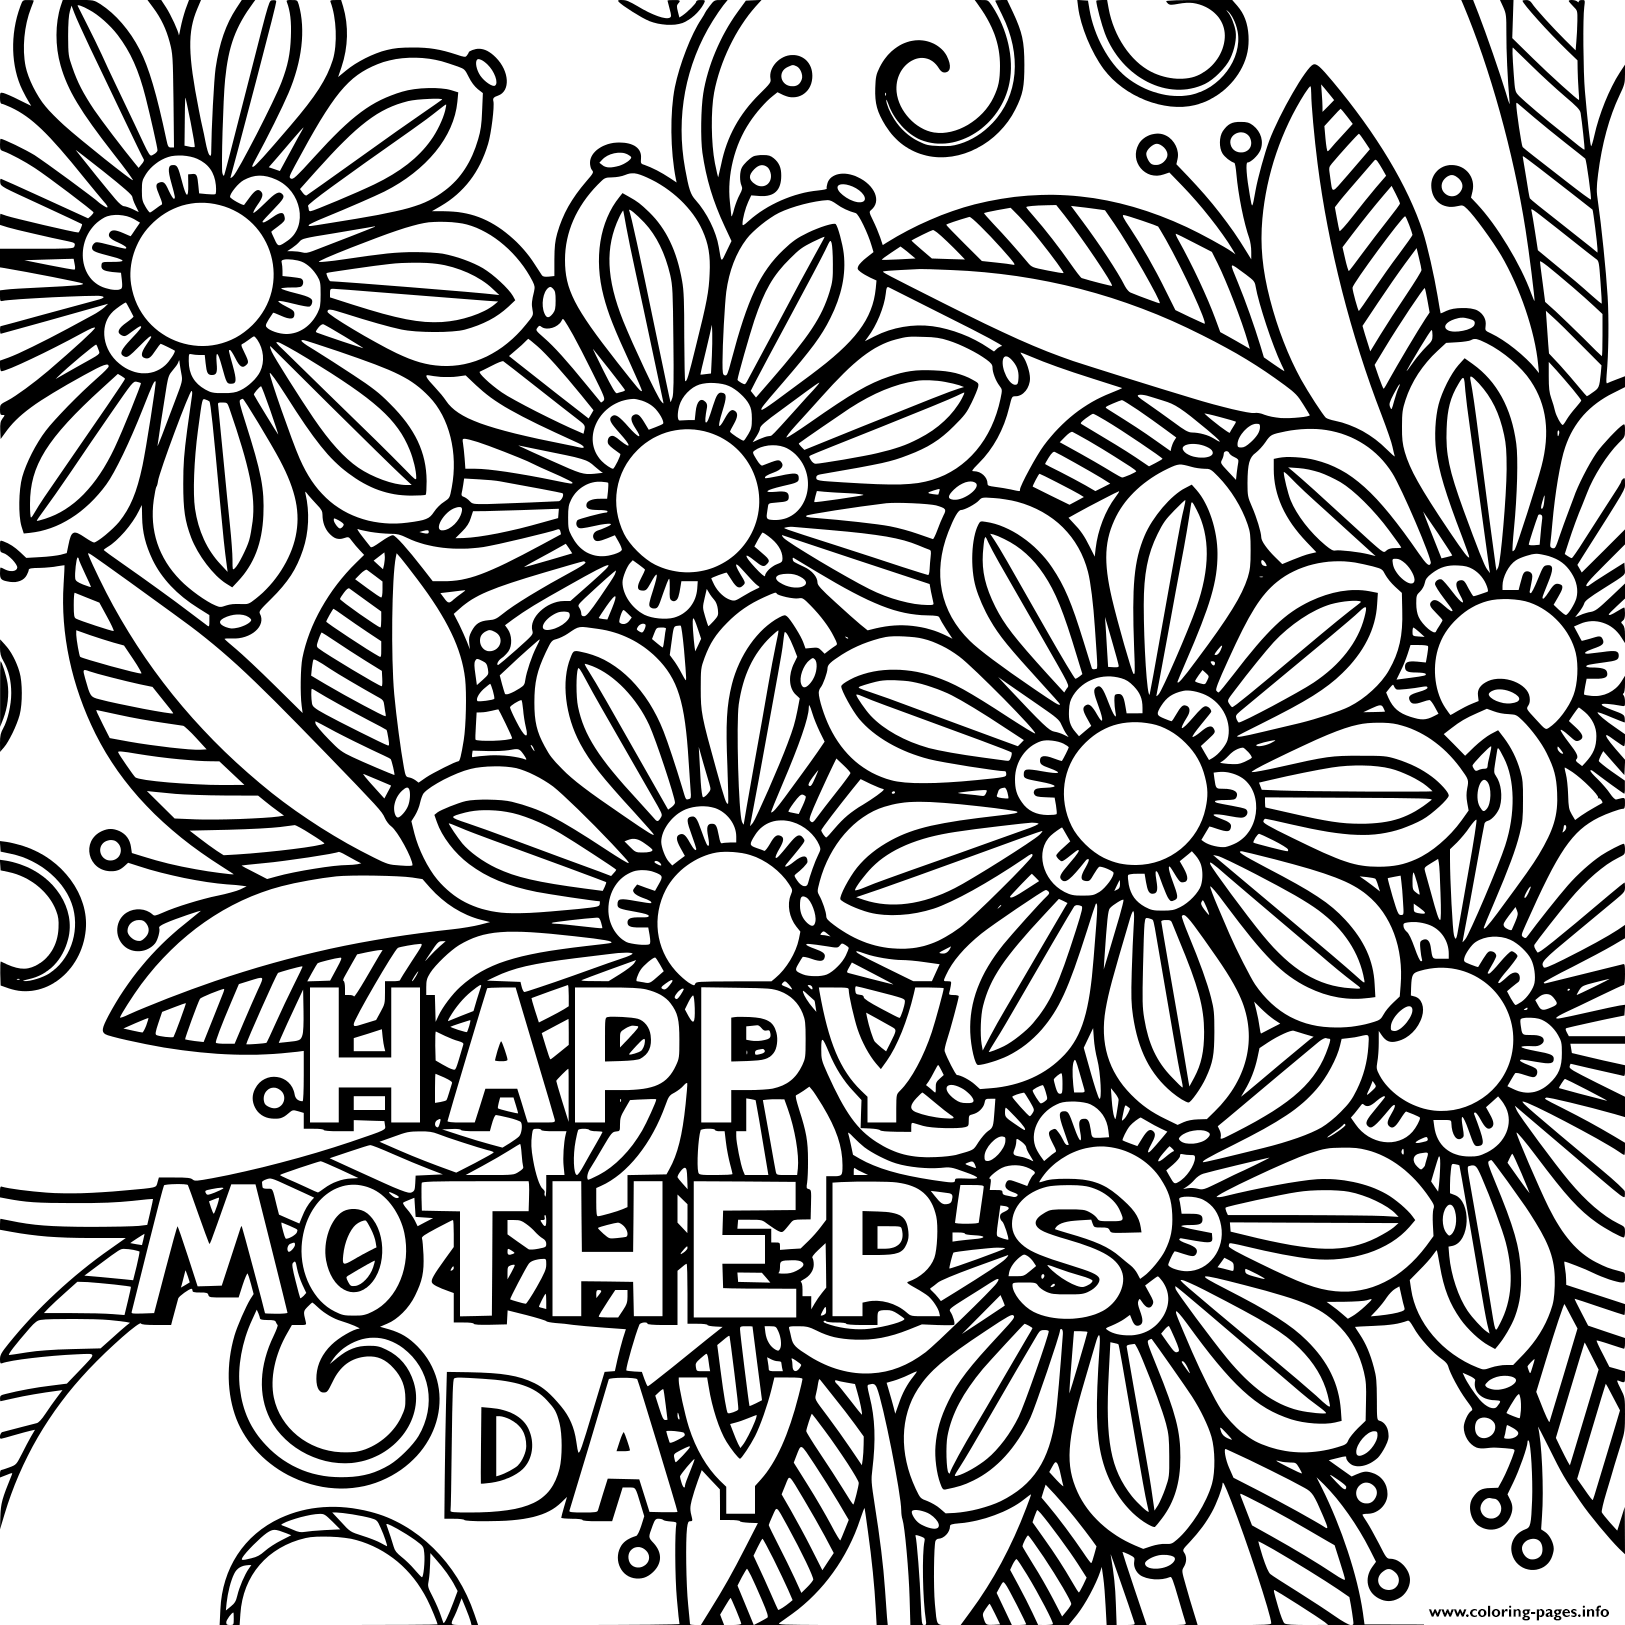 graphic relating to Mothers Day Coloring Pages Printable named Content Moms Working day Grownup Mlack And White Coloring Webpages Printable